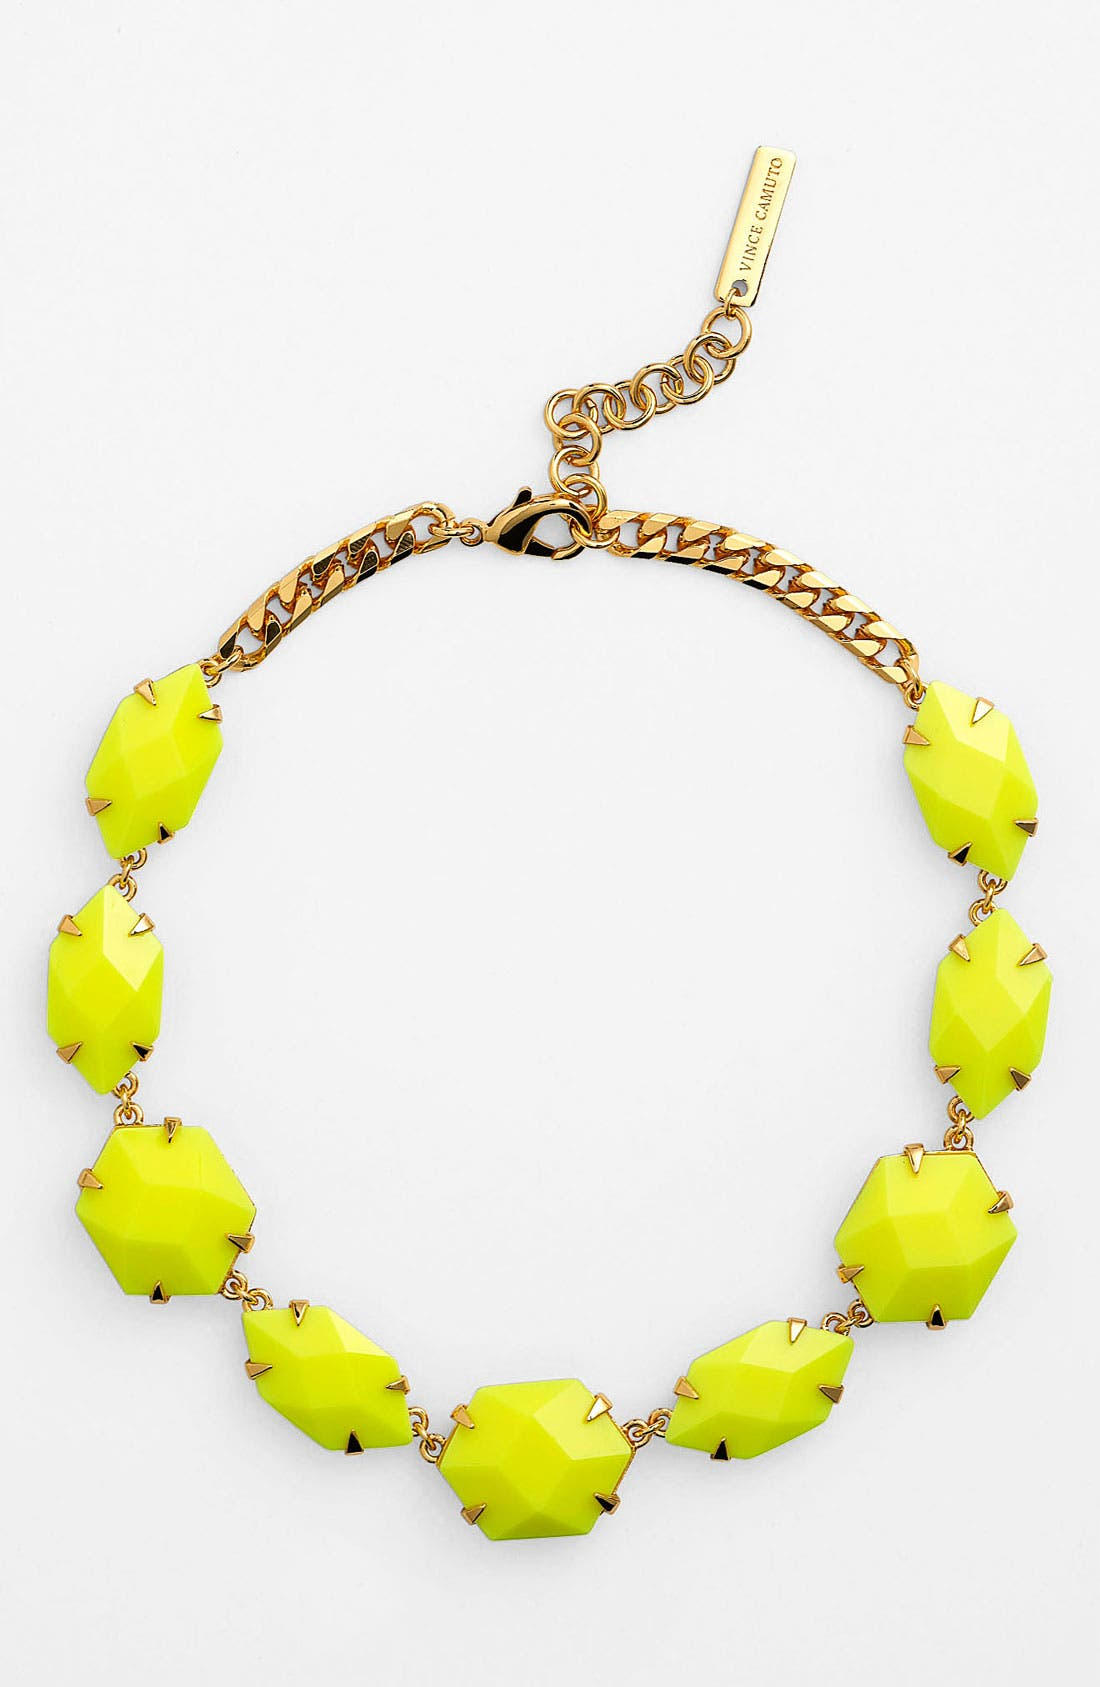 Alternate Image 1 Selected - Vince Camuto 'Bright Gems' Faceted Resin Collar Necklace